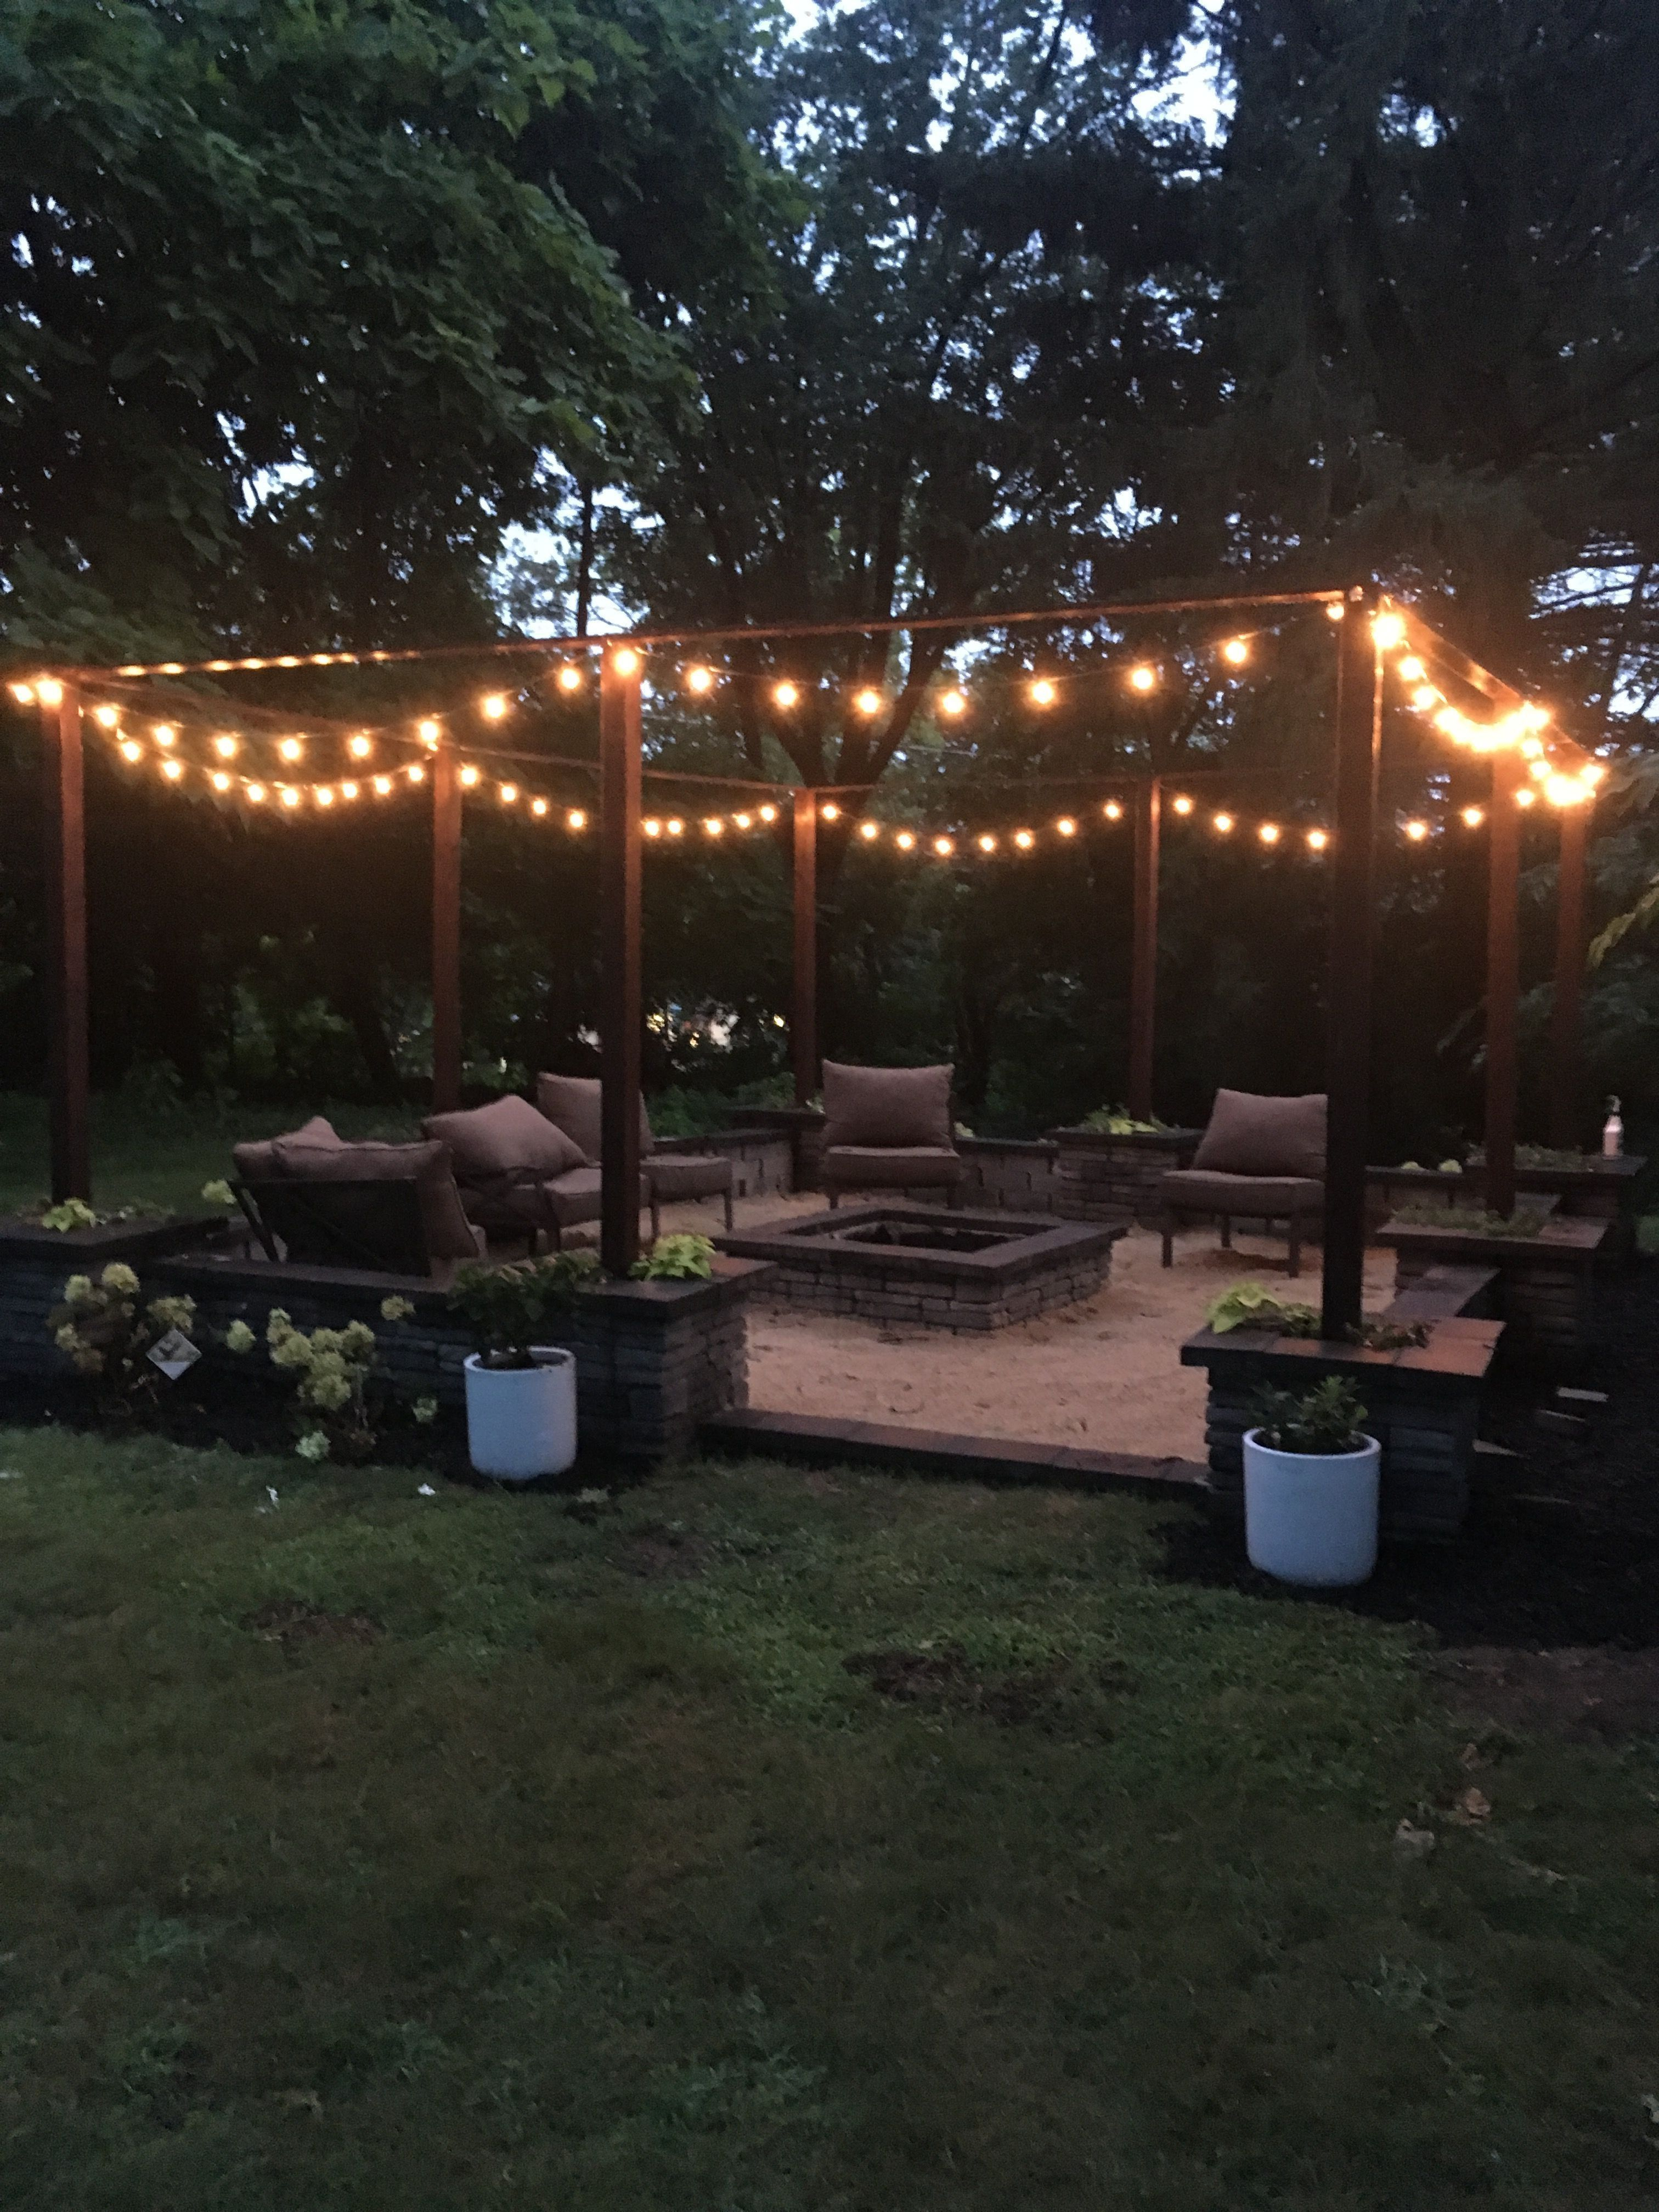 Photo of 25 DIY Fire Pit Plan Ideas with Lighting for Front Yard